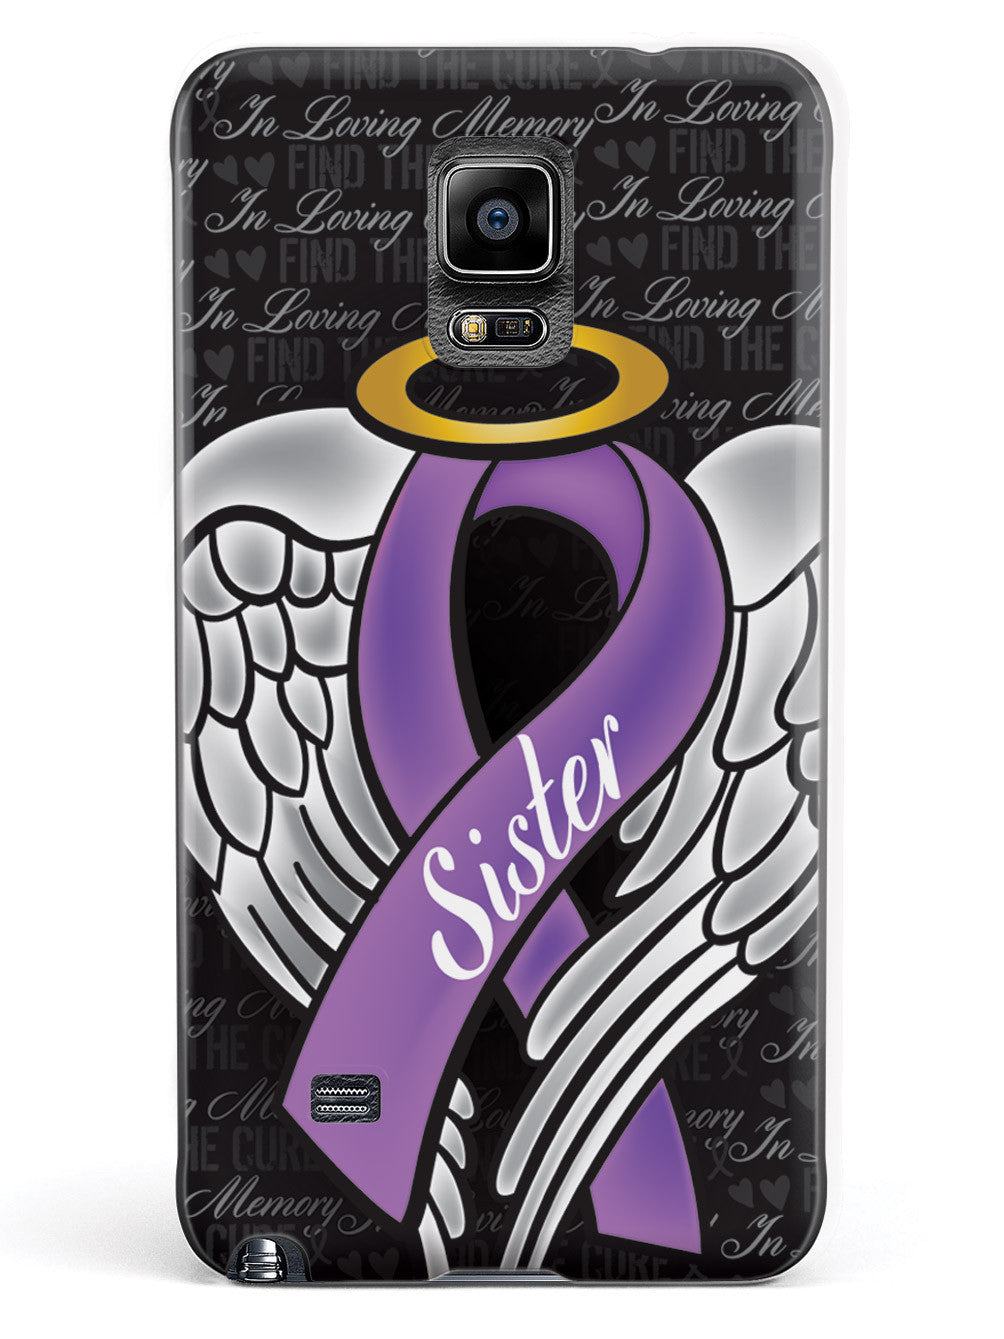 In Loving Memory of My Sister - Purple Ribbon Case